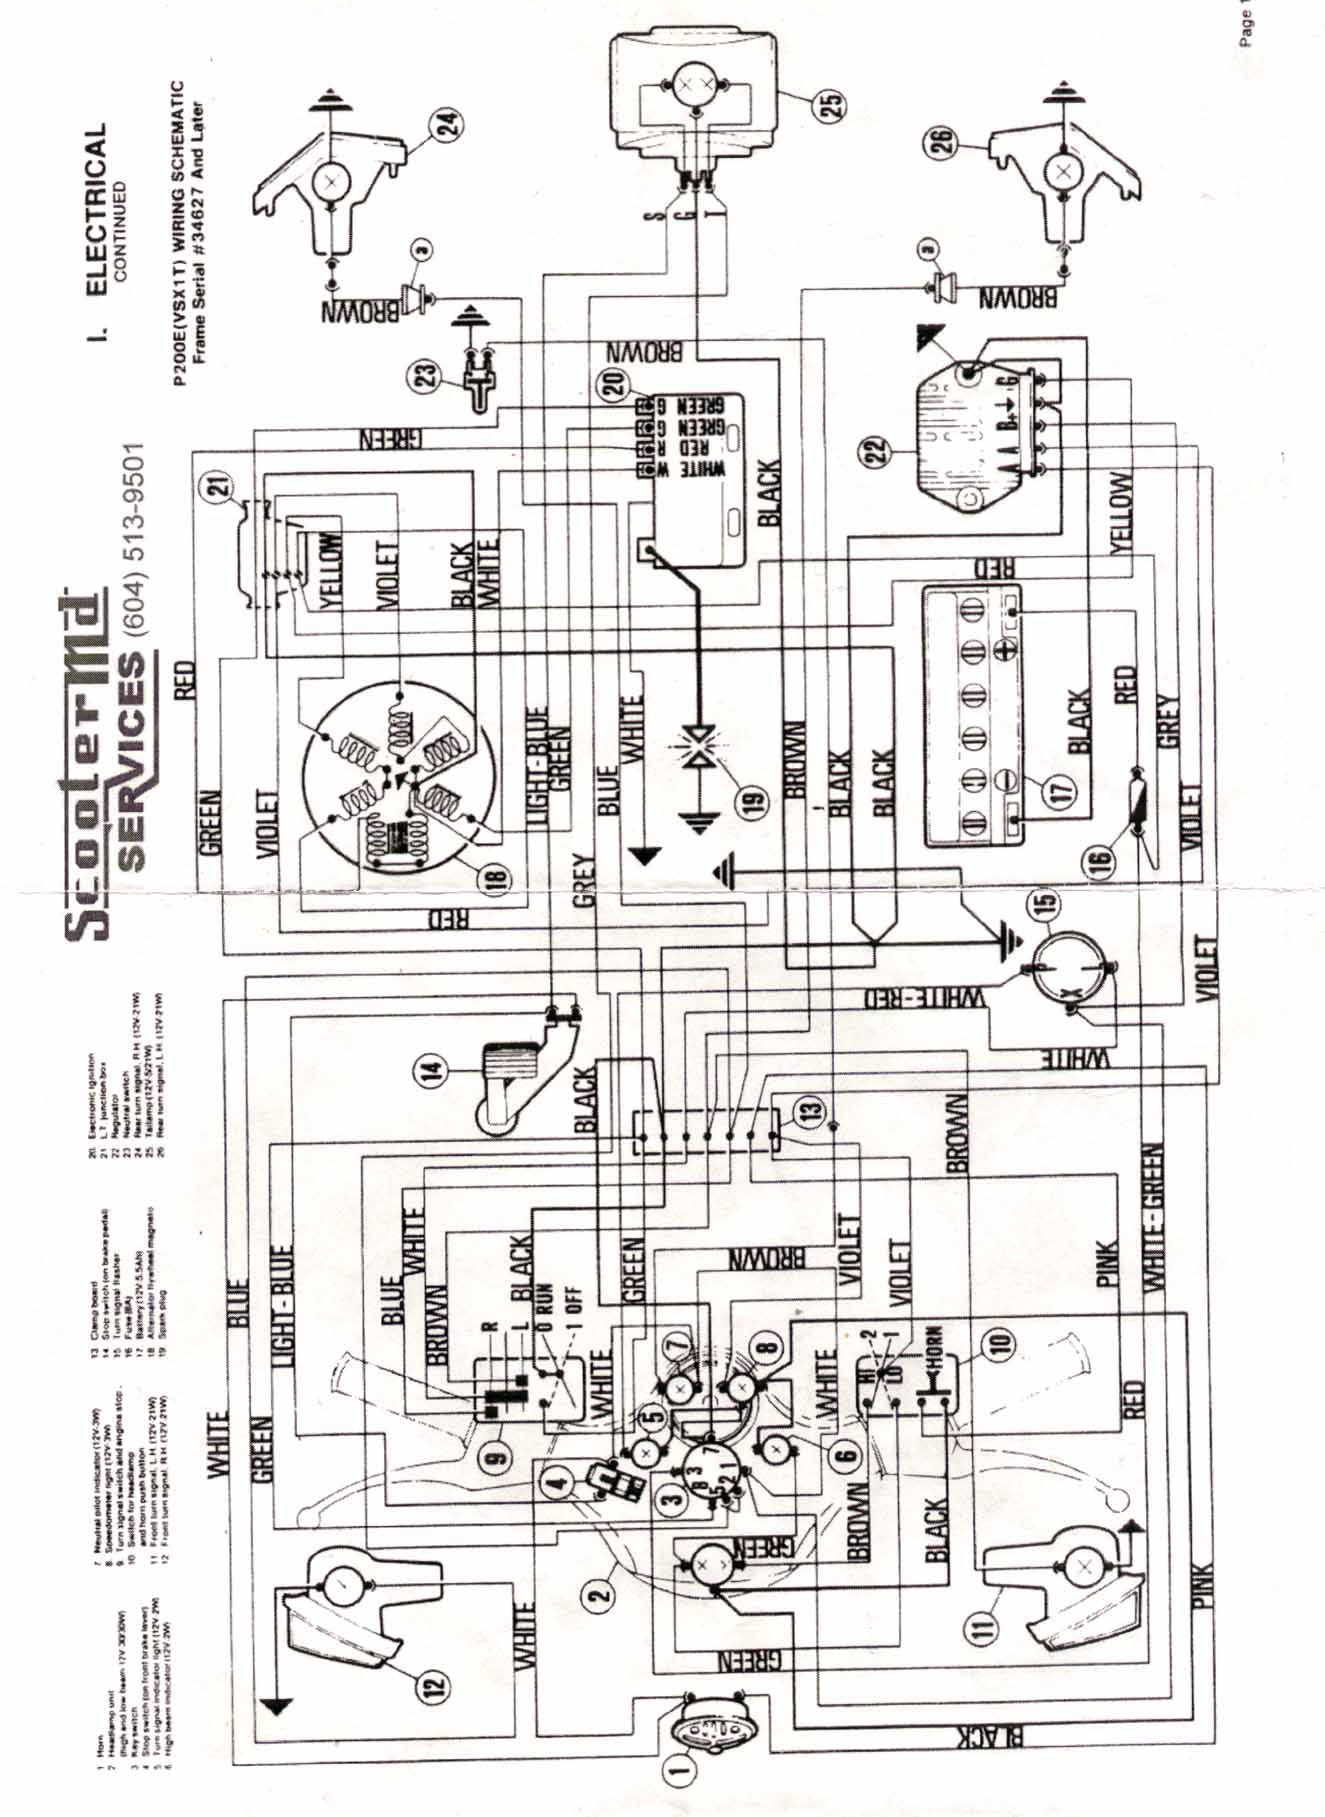 p200diag2 vespa p series maintenance & repair vespa wiring diagram at suagrazia.org